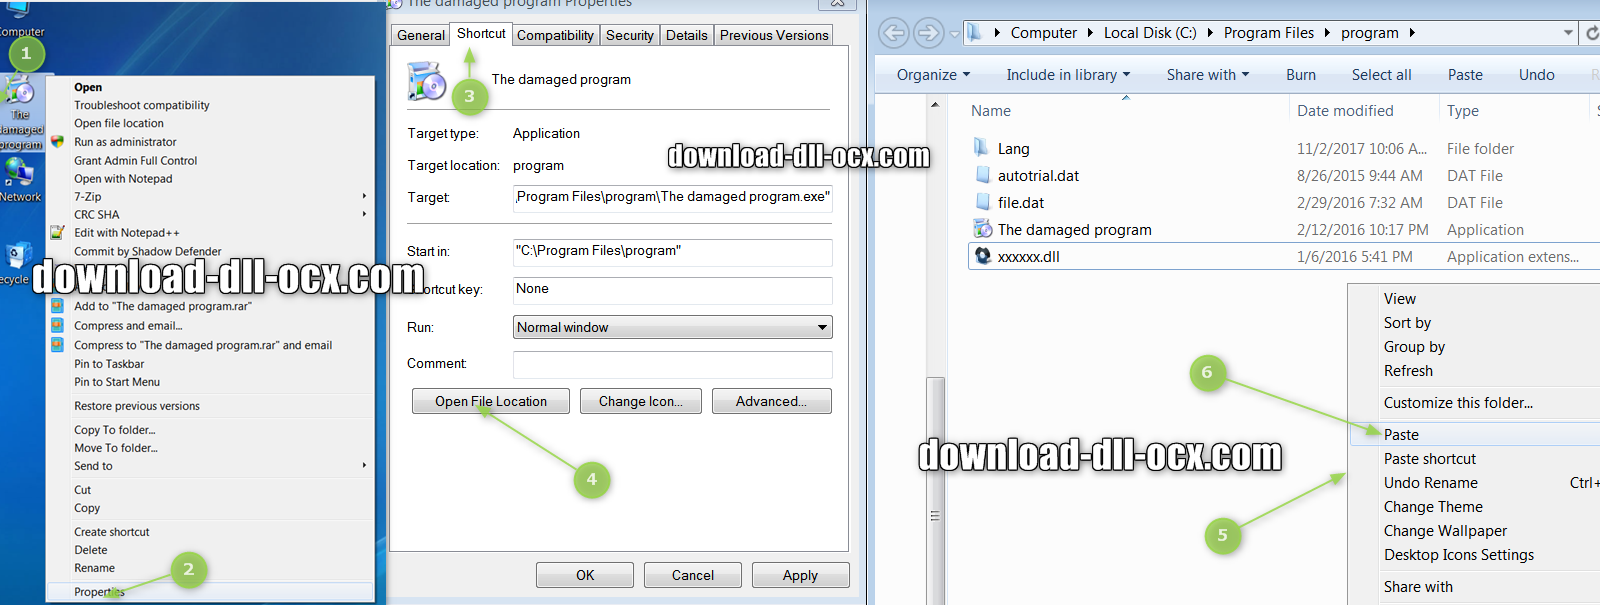 how to install Agt0804.dll file? for fix missing